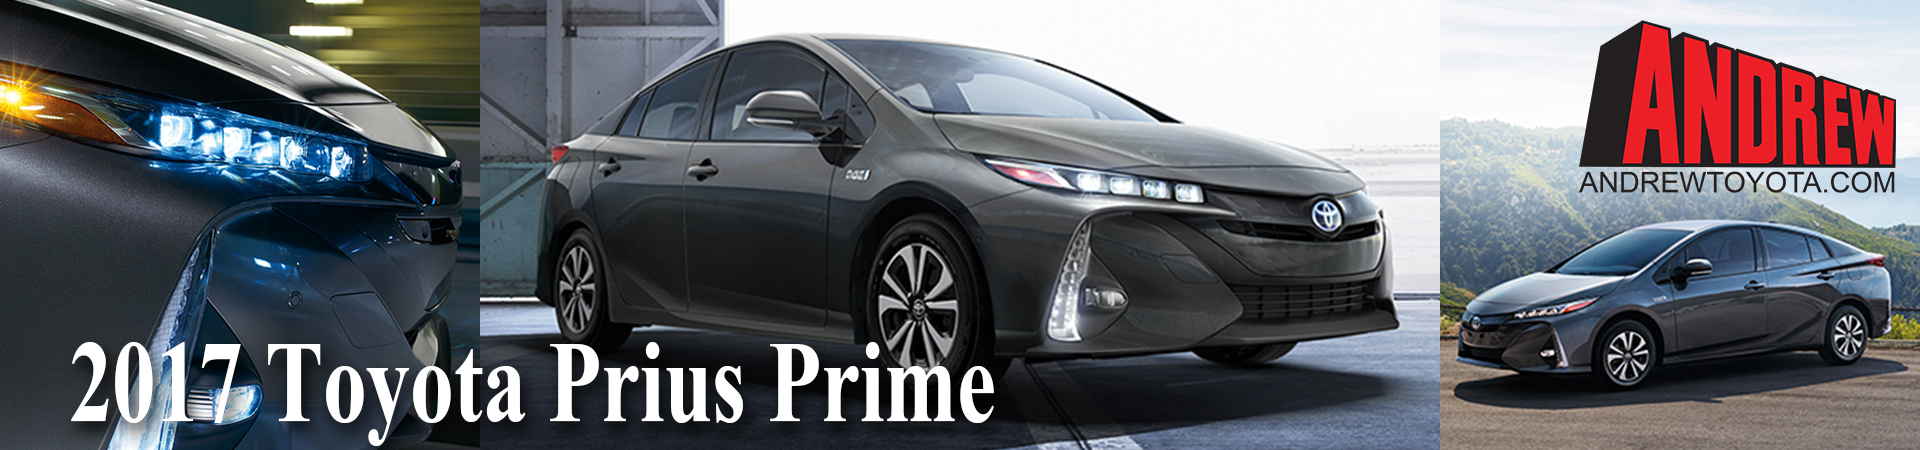 Learn about the Prius Prime at Andrew Toyota today!